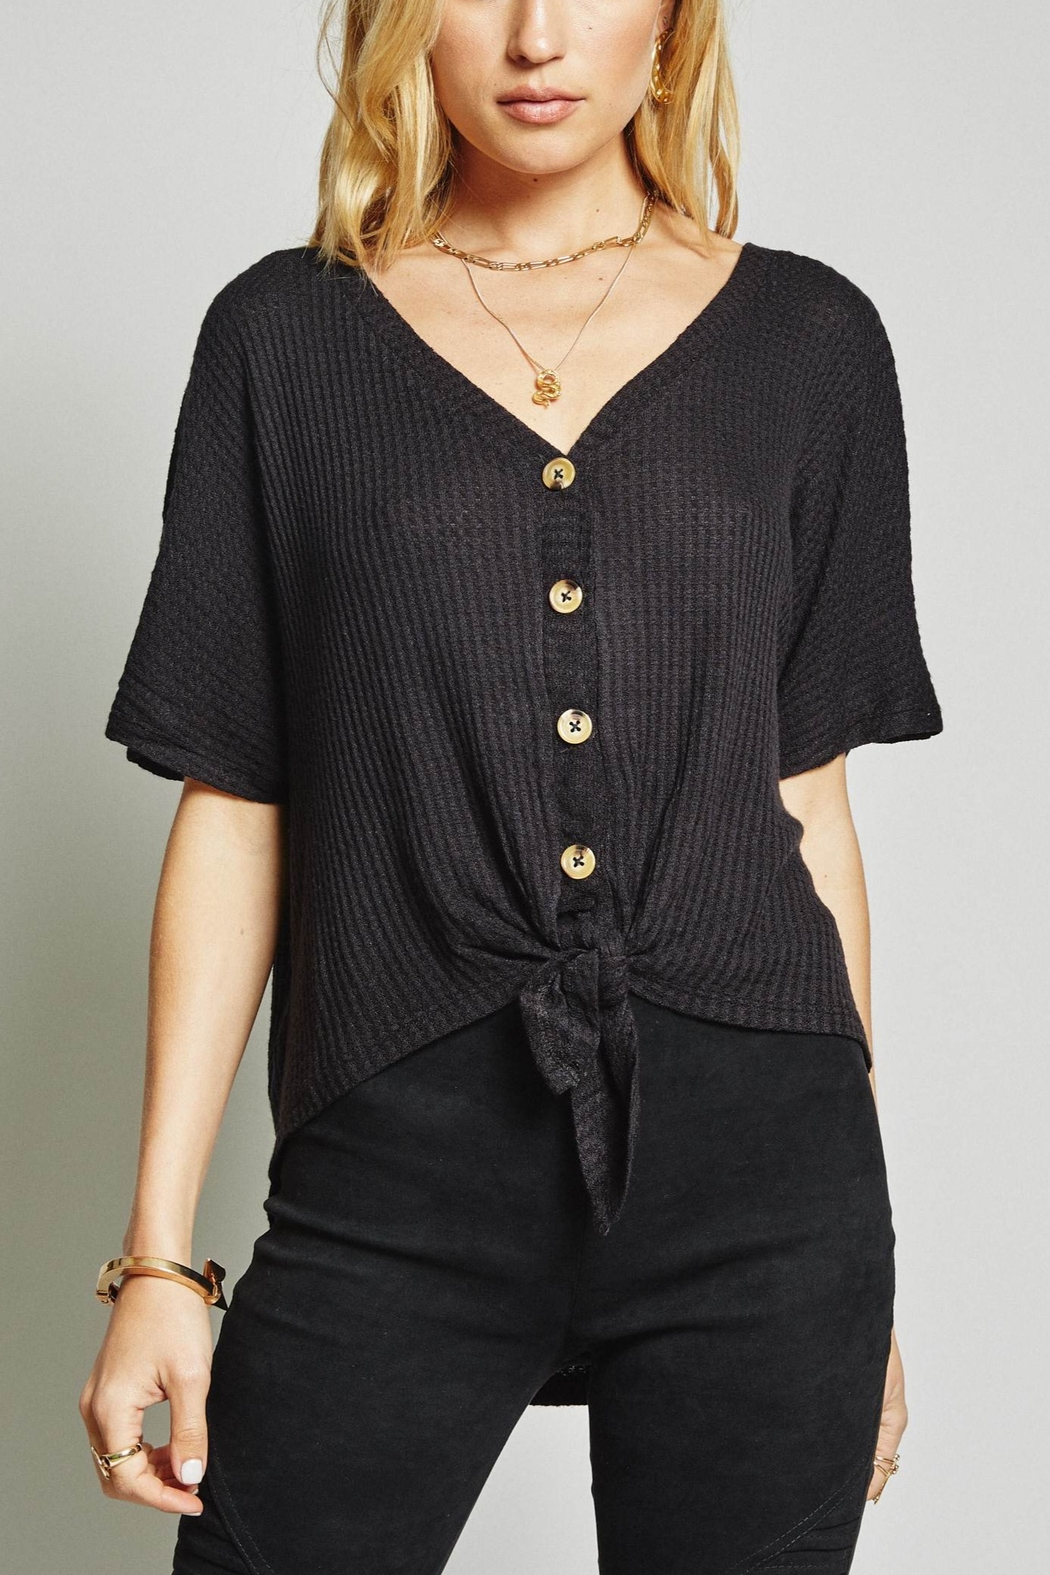 SAGE THE LABEL Joni Top - Front Cropped Image